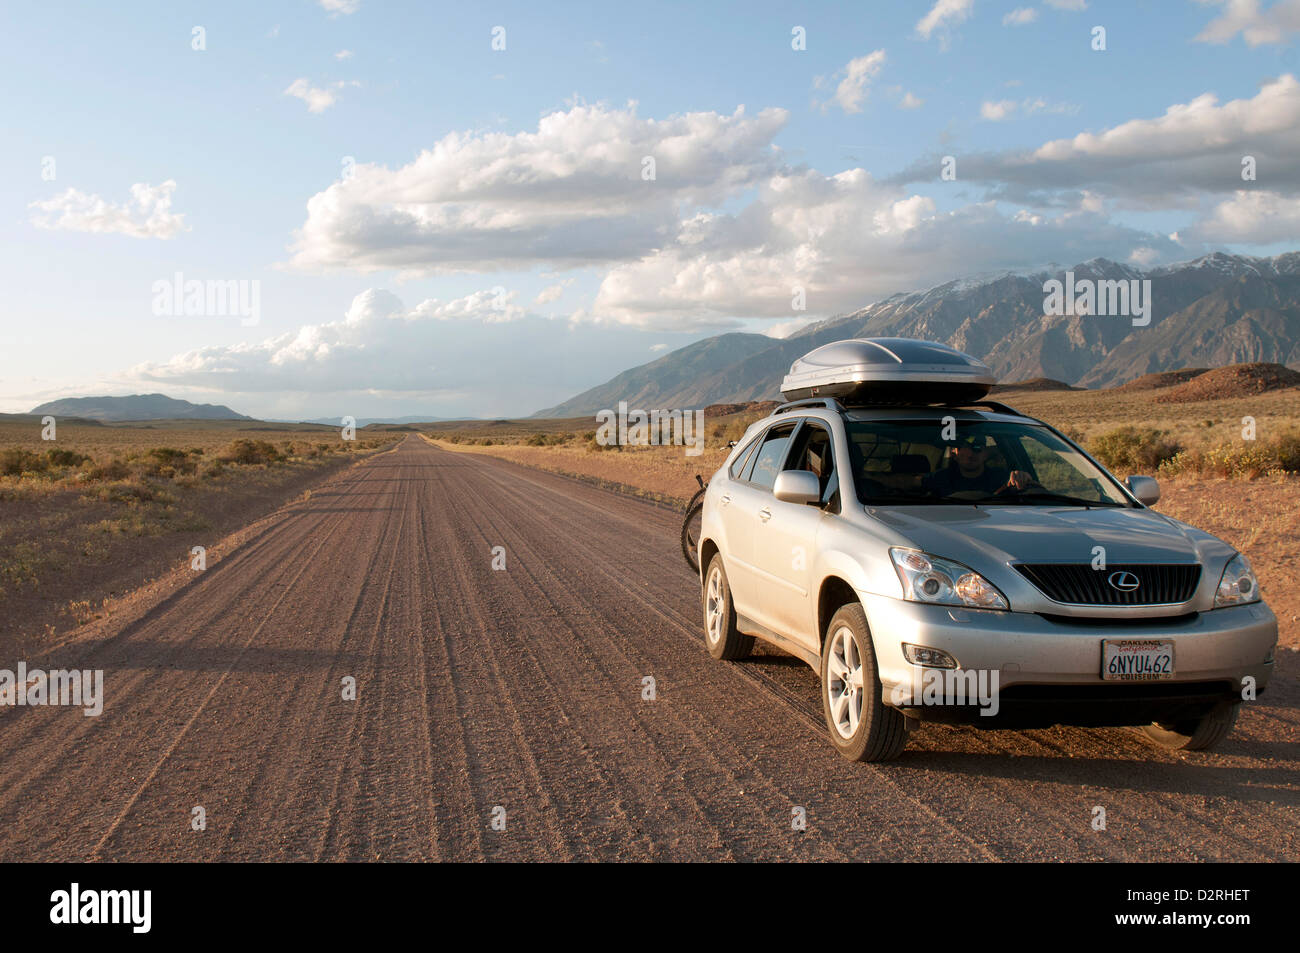 4WD car travels on a dirt road on a road trip through Owens Valley,  California near Bishop on the way to Red Canyon - Stock Image